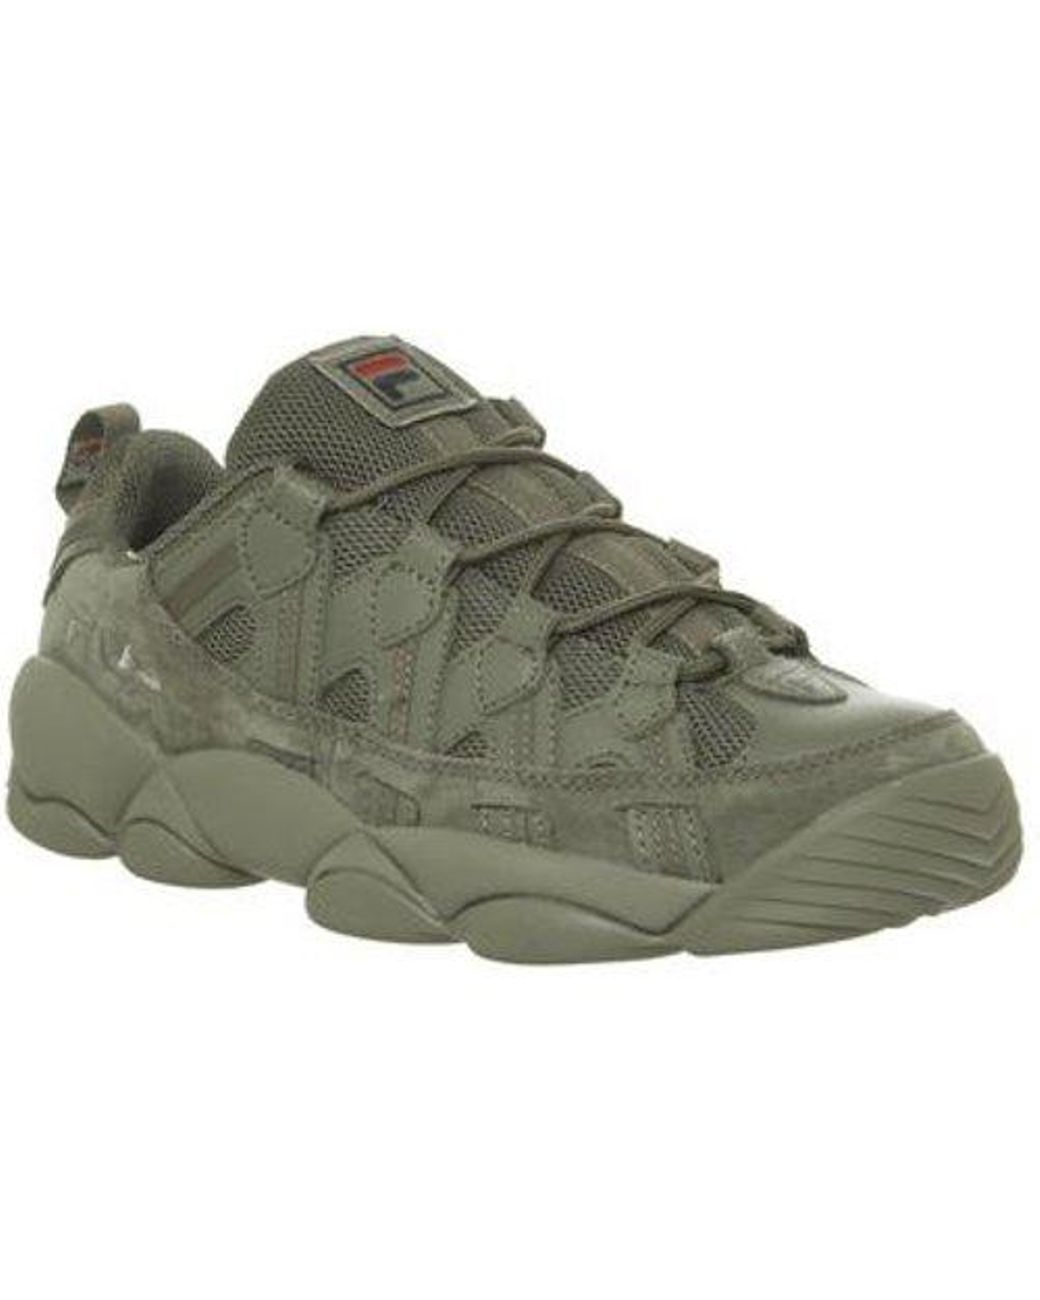 a91c0220eee28 Fila Spaghetti Low in Green for Men - Save 30% - Lyst